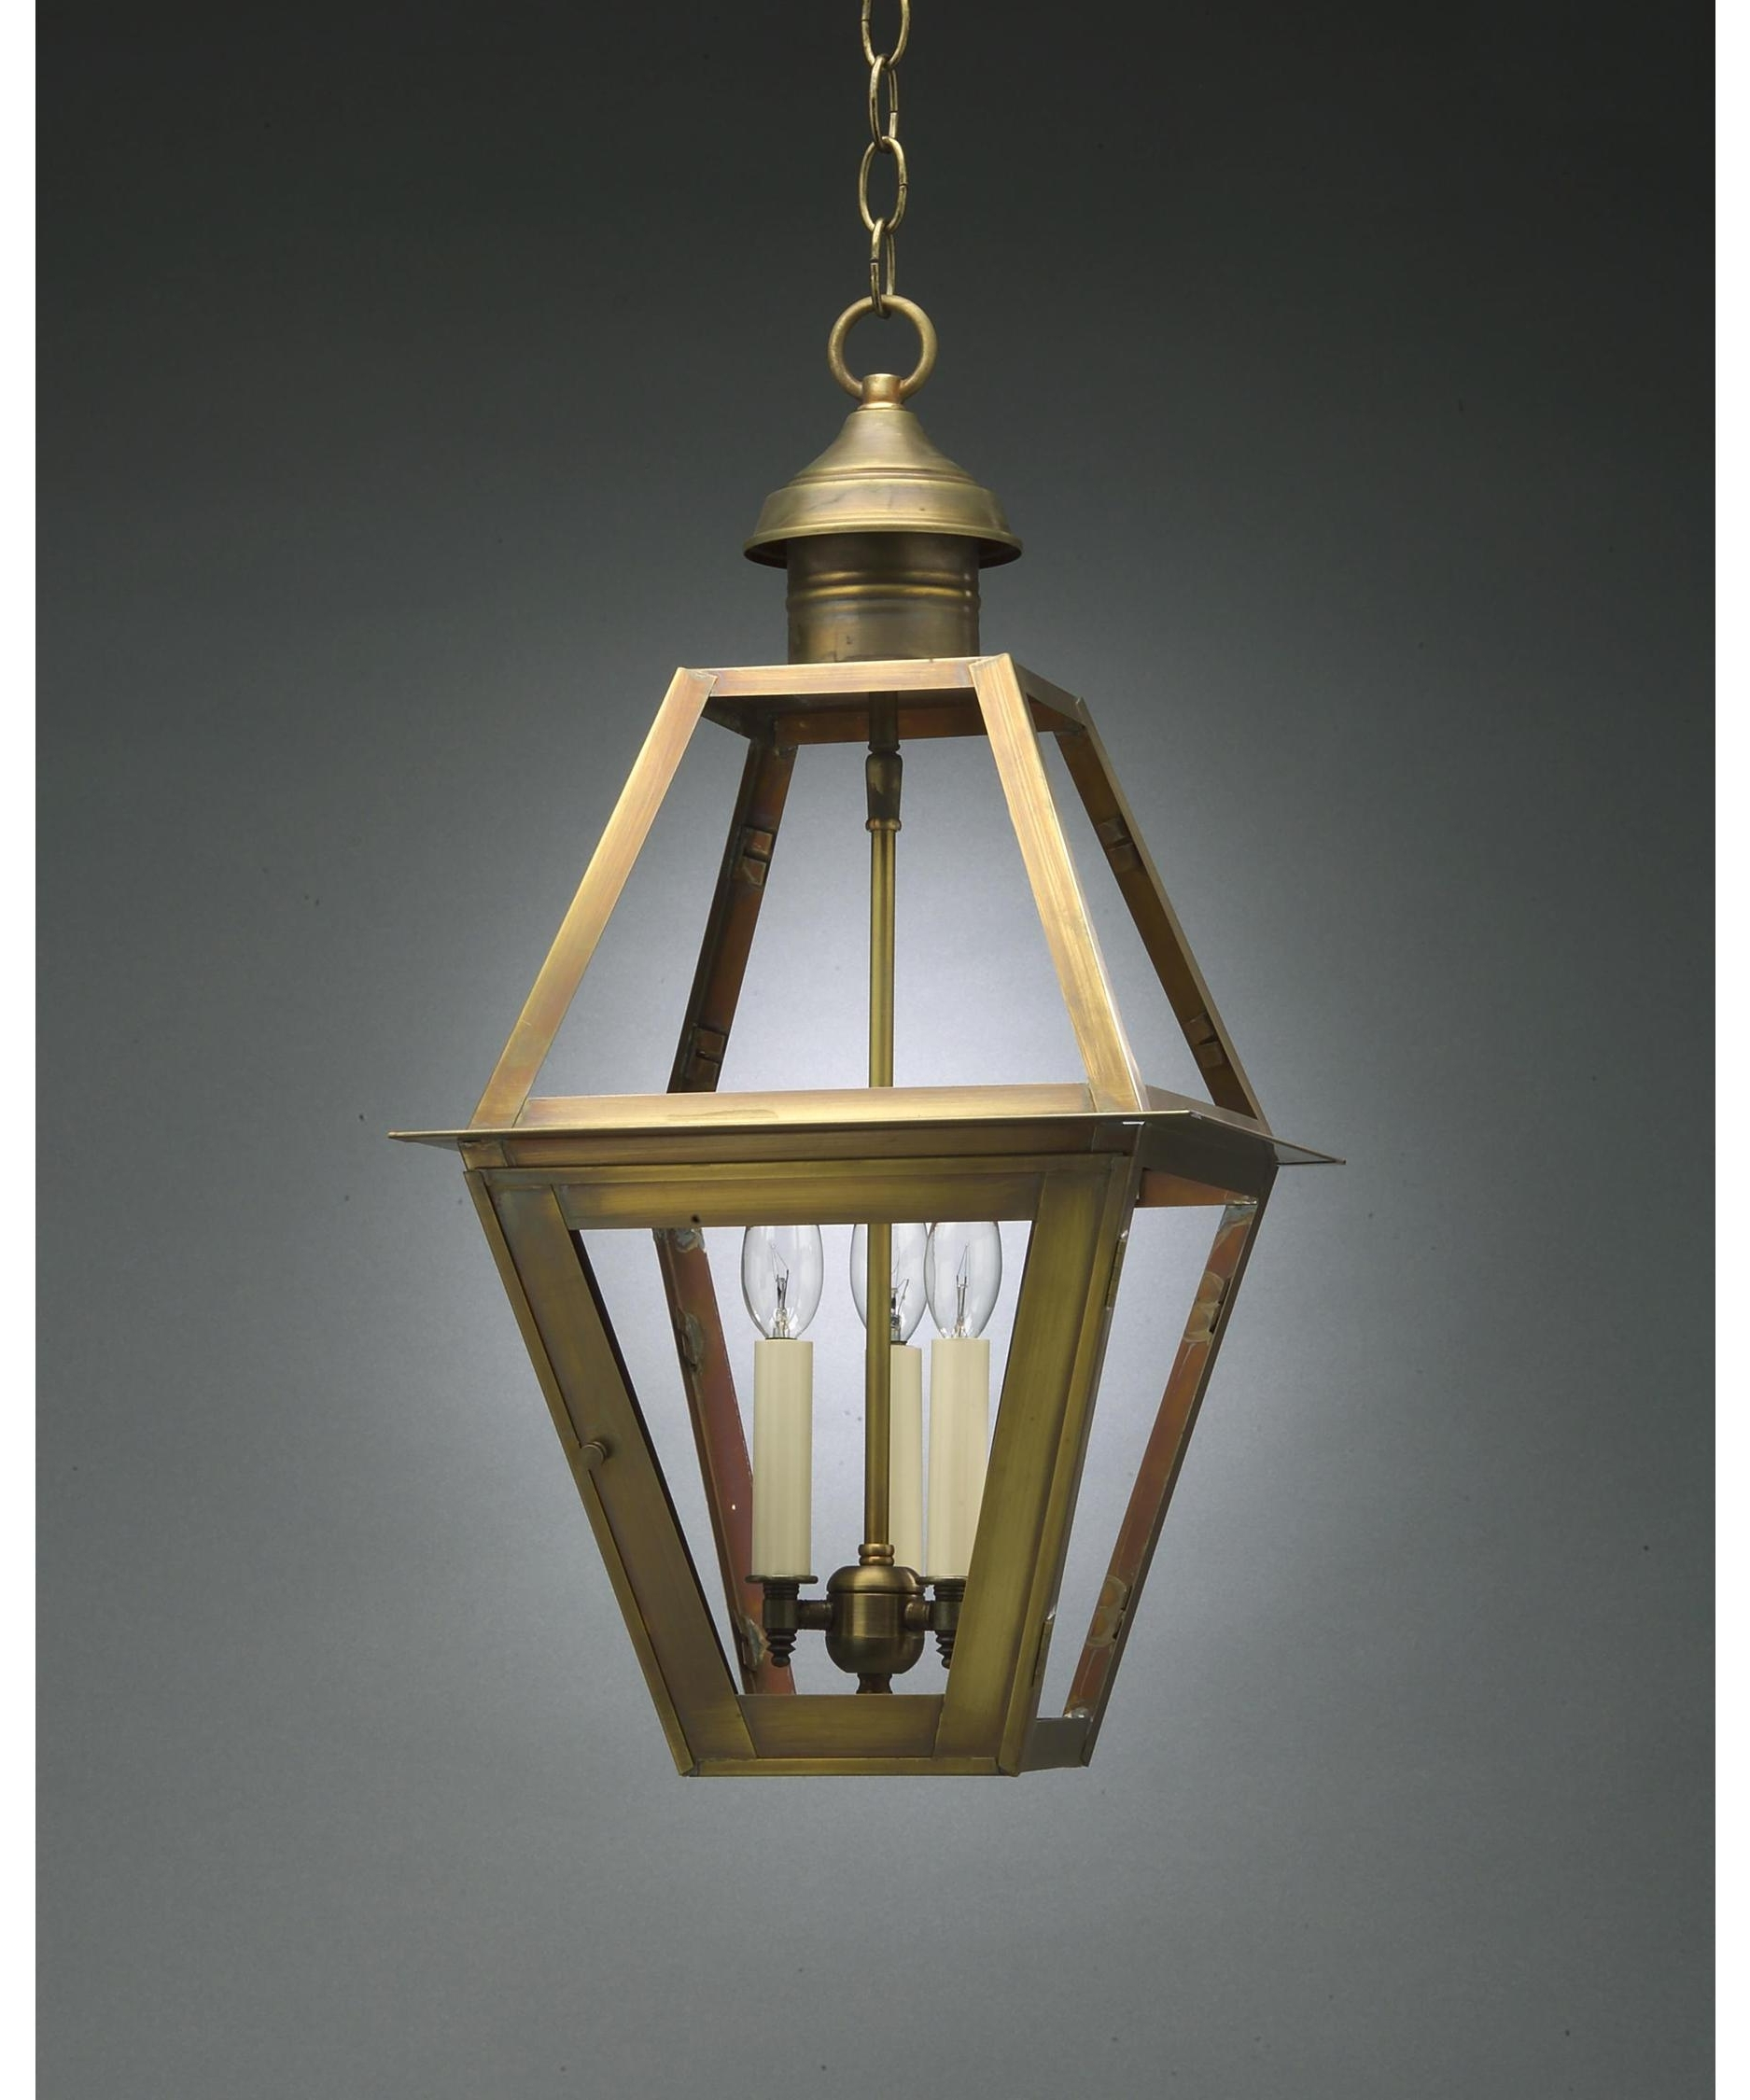 Outdoor Hanging Glass Lanterns In Well Known Northeast Lantern 1012 Lt3 Boston 12 Inch Wide 3 Light Outdoor (View 14 of 20)